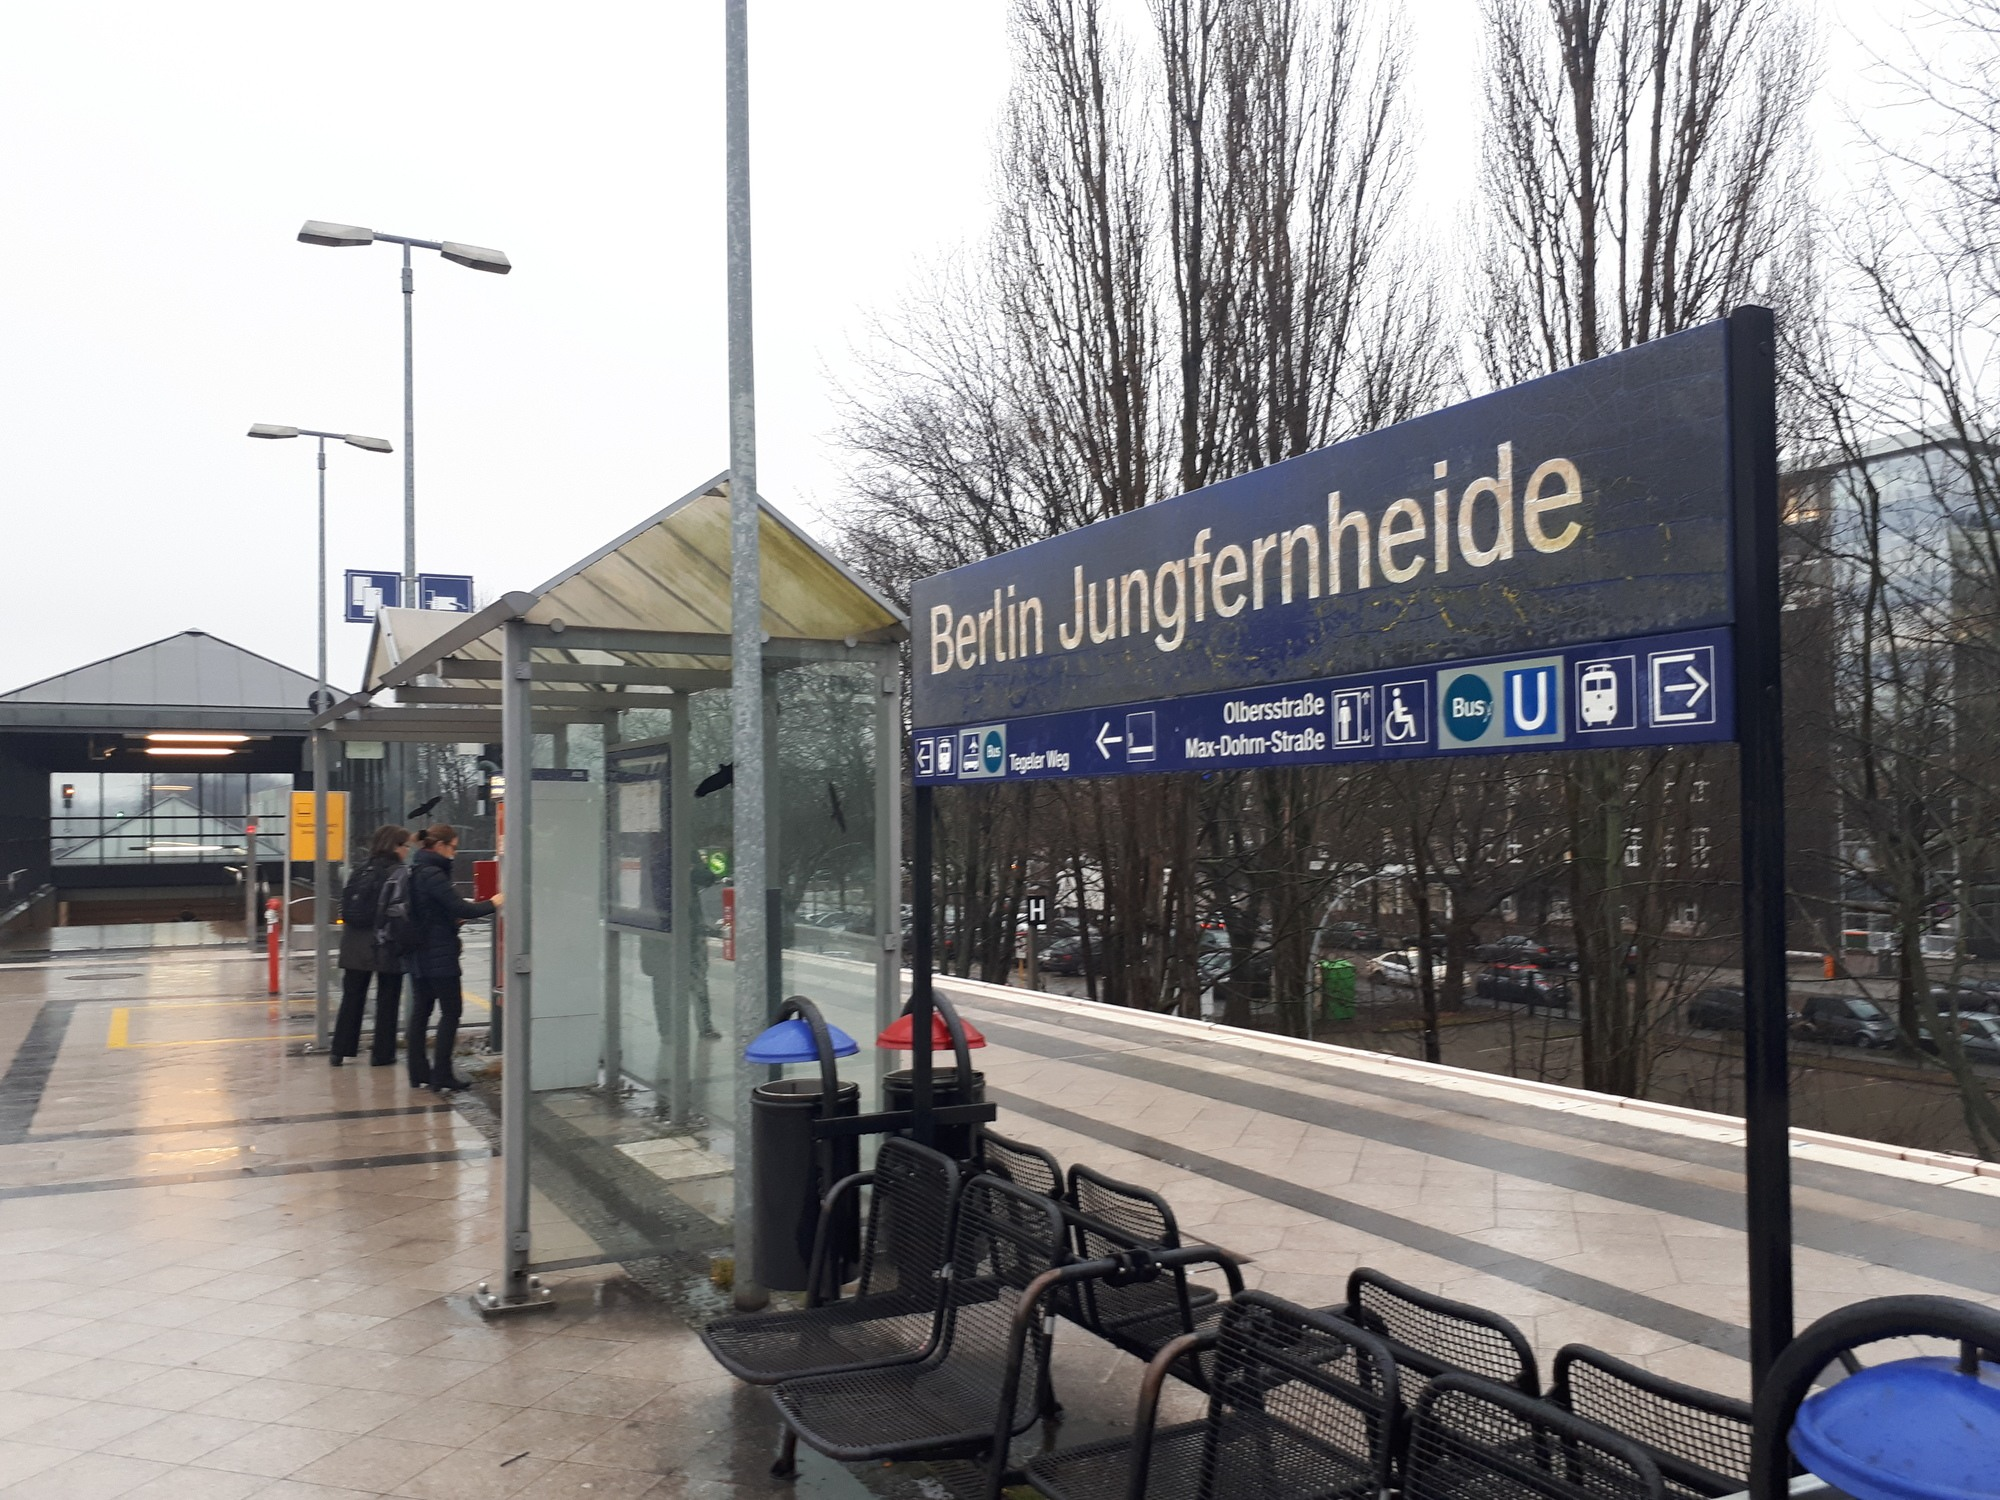 How to get to Berlin